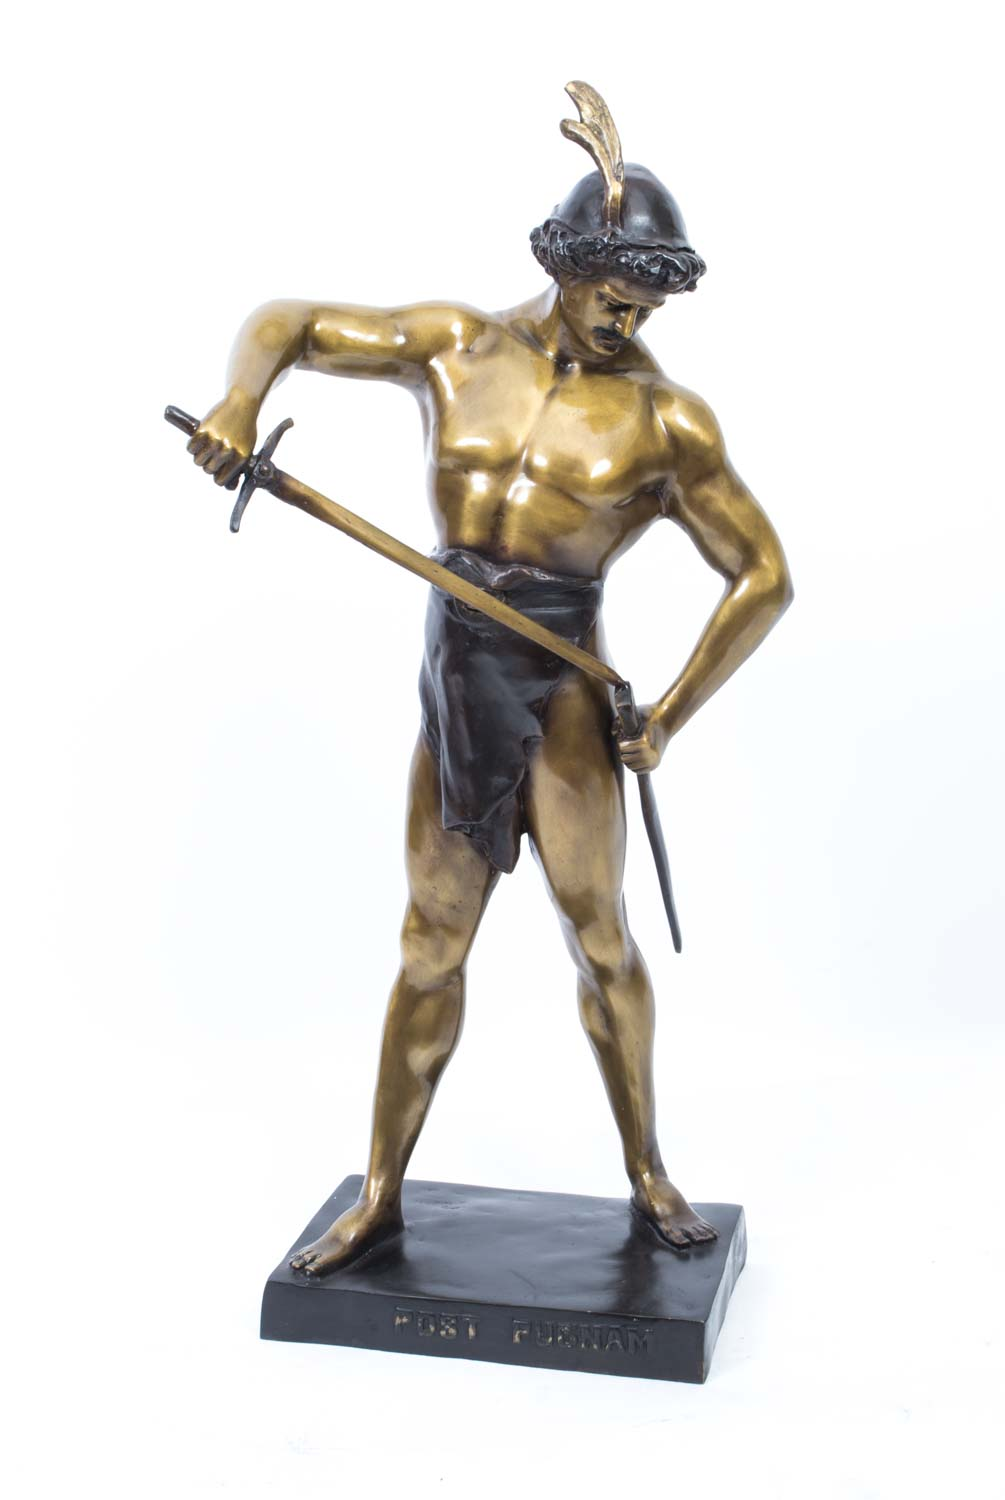 06794 Striking Bronze Roman Gladiator Statue Figure 2